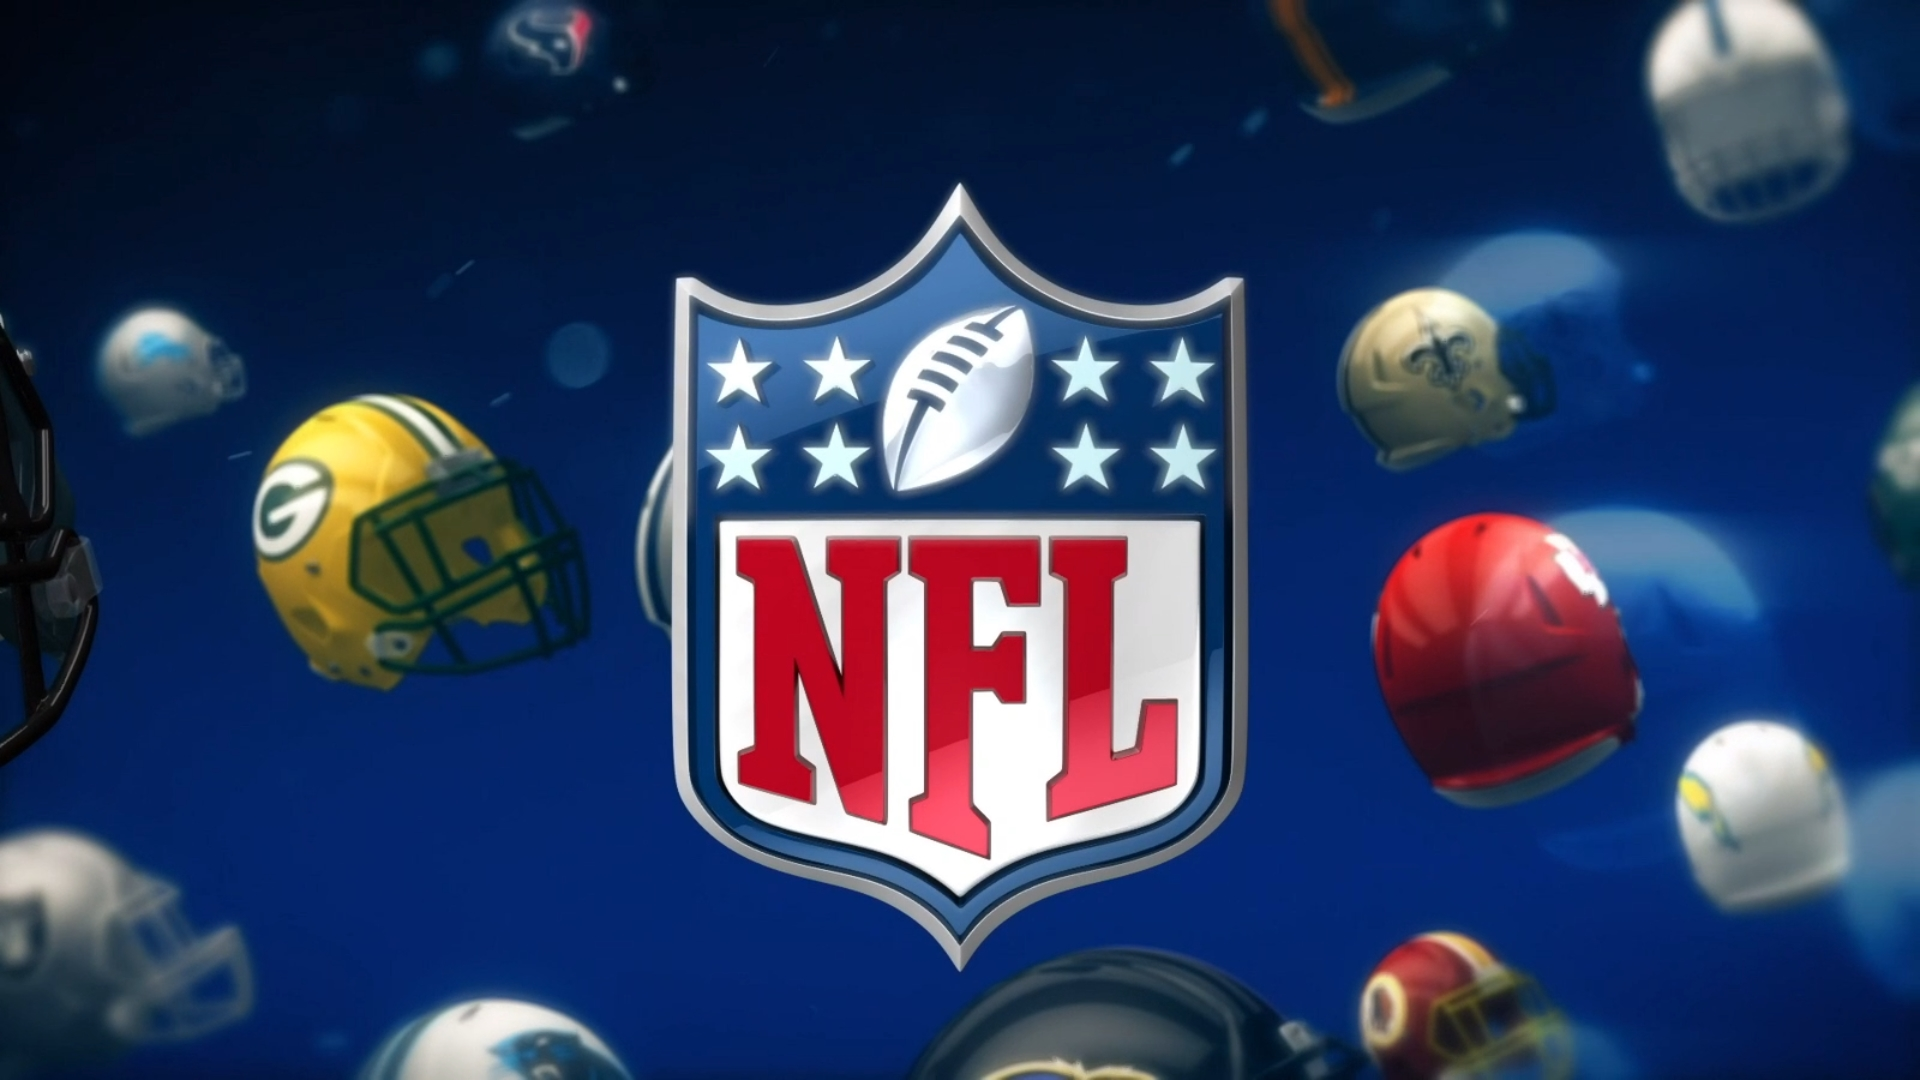 NFL 2020 – Wild Card – Live TV Coverage on Sky Sports